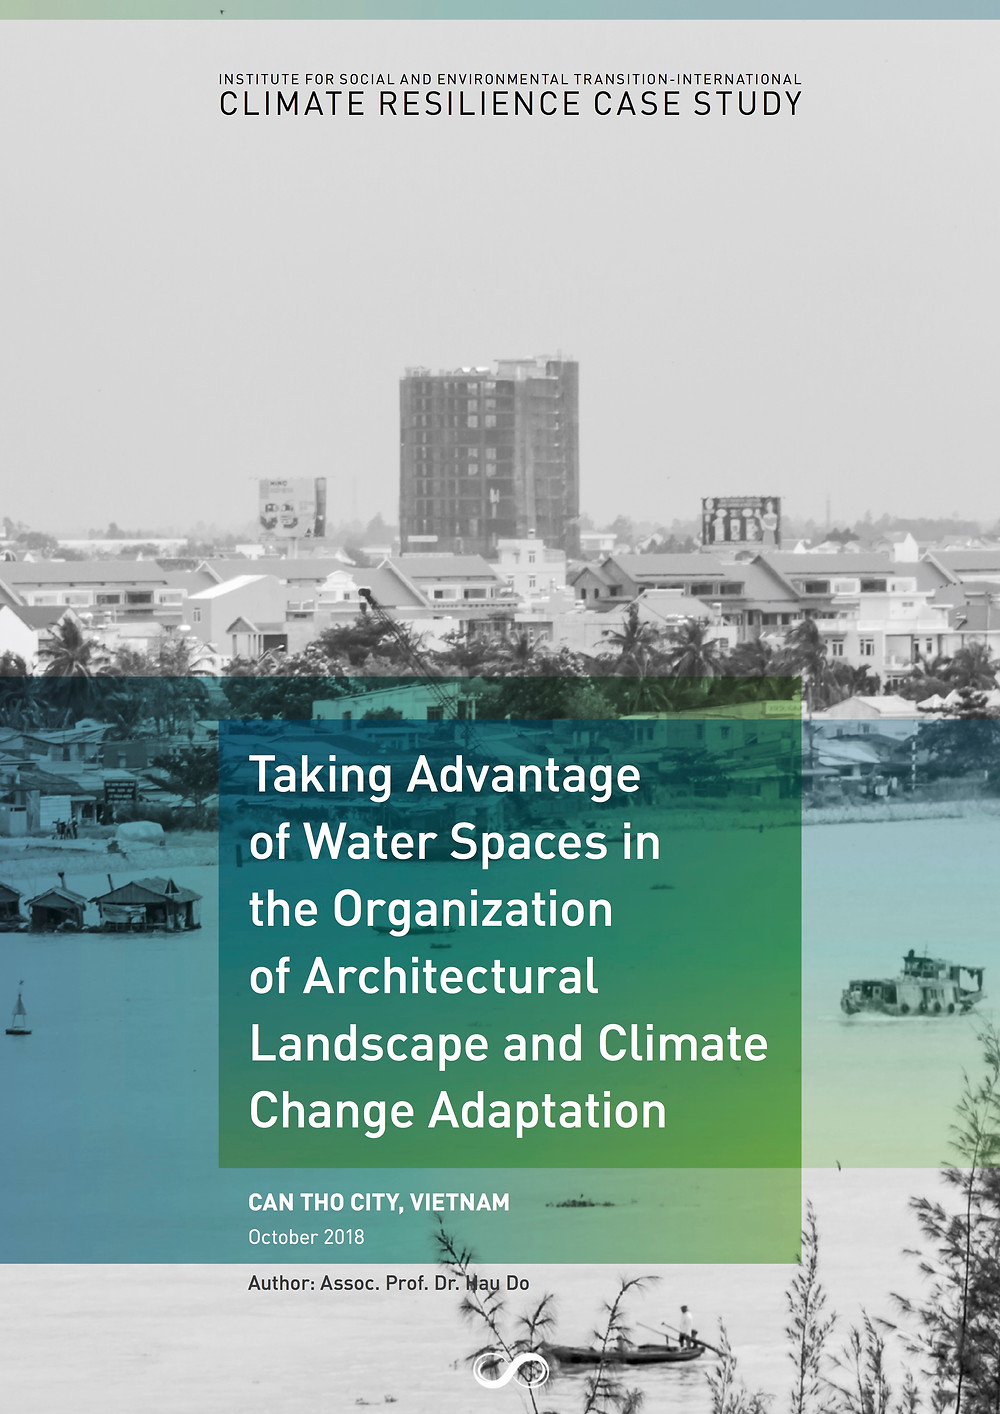 Case Study: Can Tho City—Taking Advantage of Water Spaces in the Organization of Architectural Landscape and Climate Change Adaptation